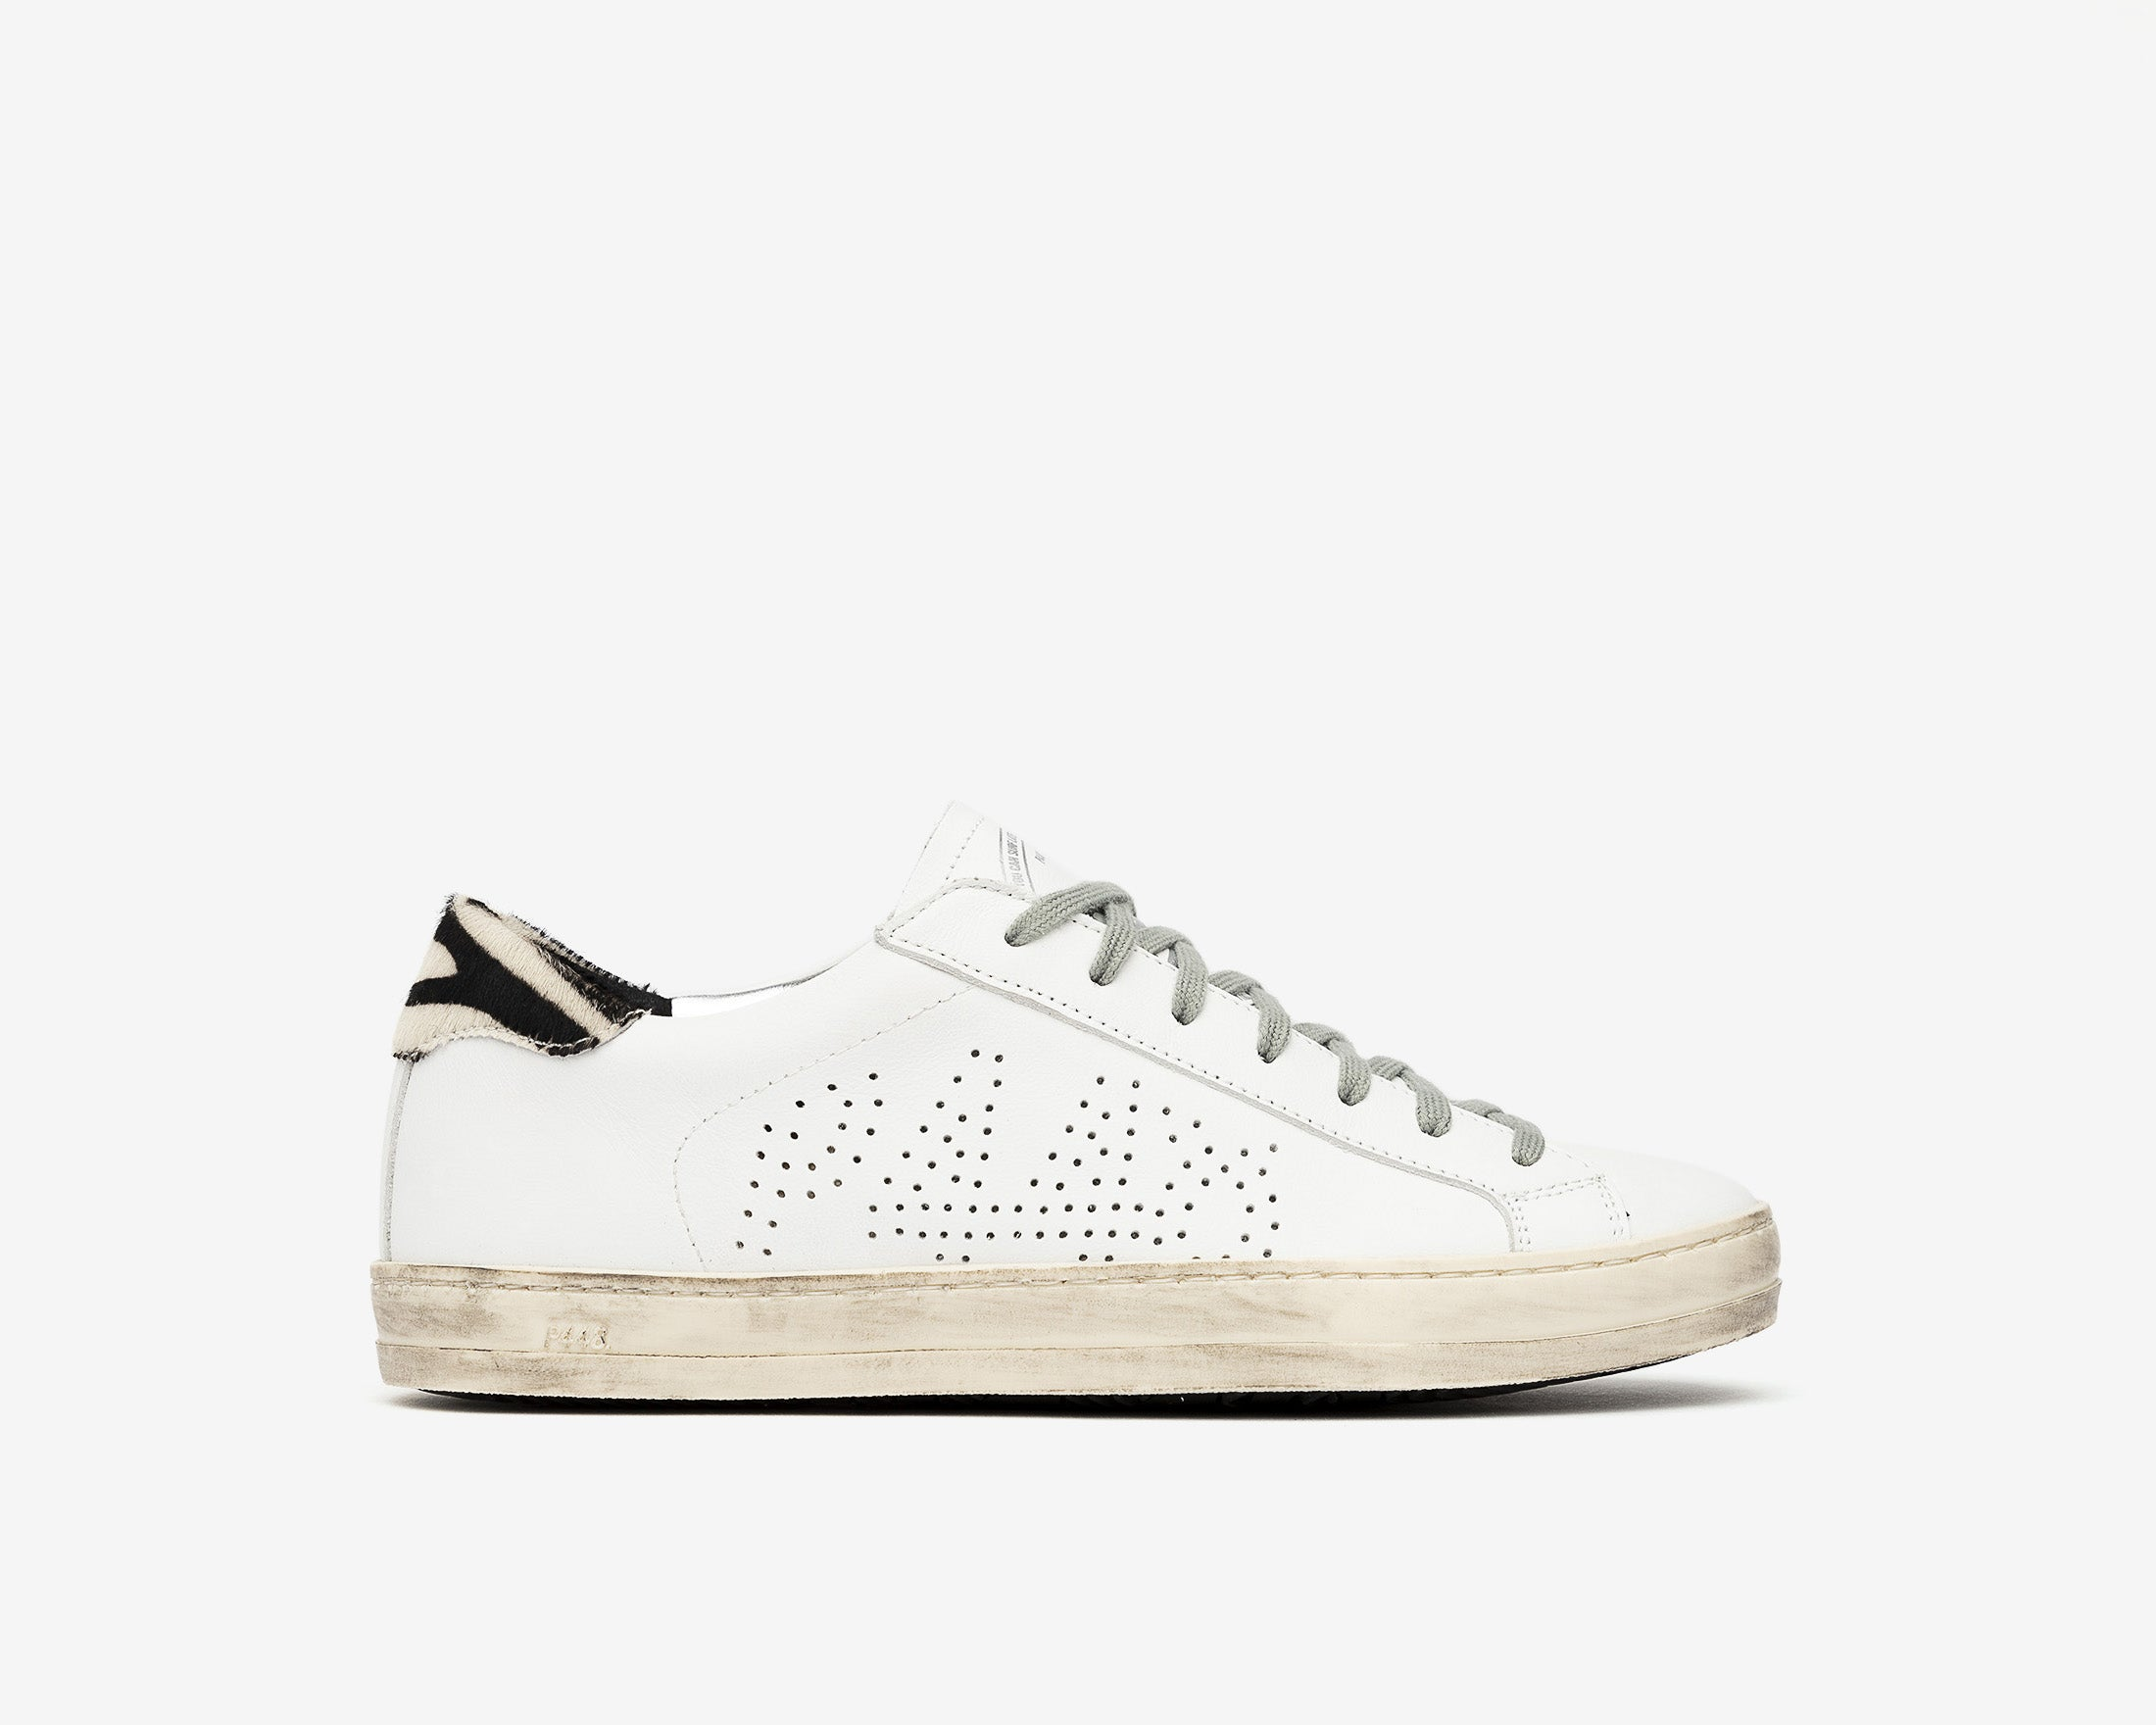 John Low-Top Sneaker in White/CZebra - Profile